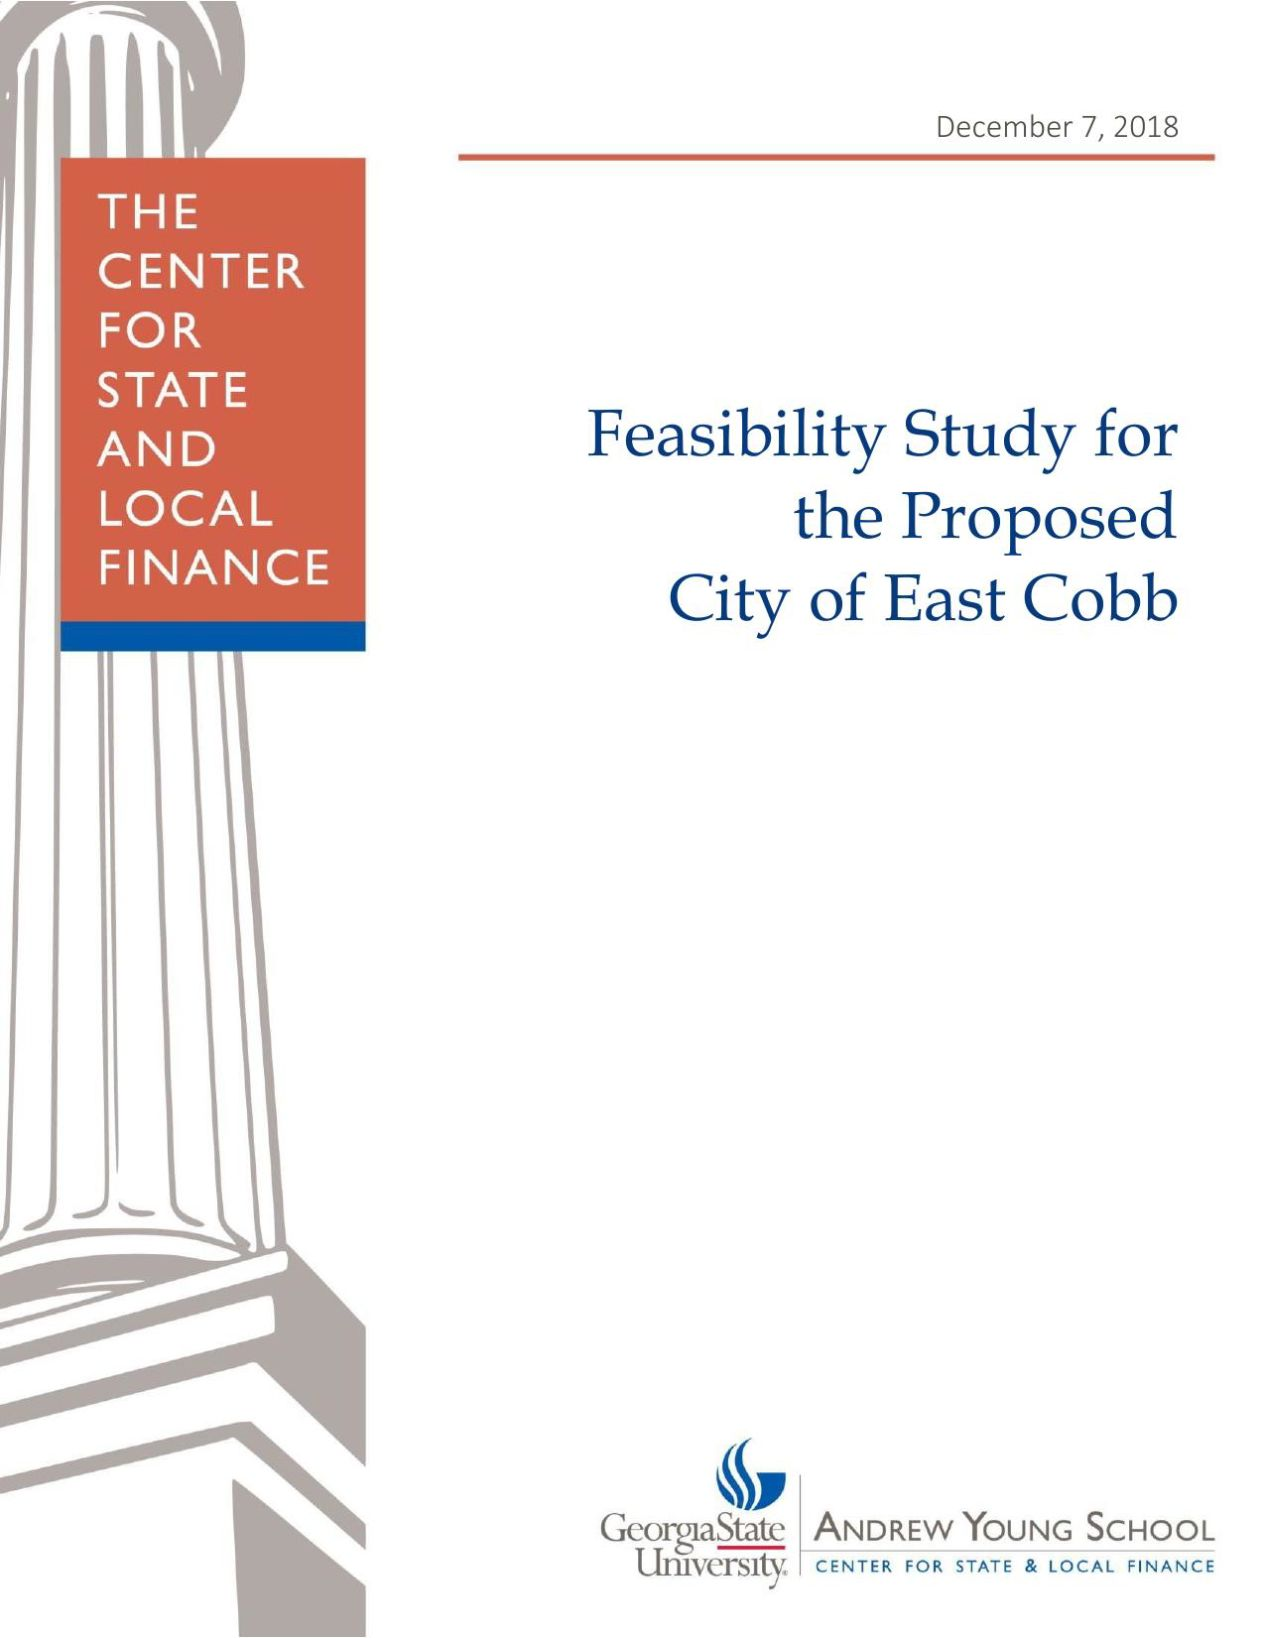 East Cobb feasibility study